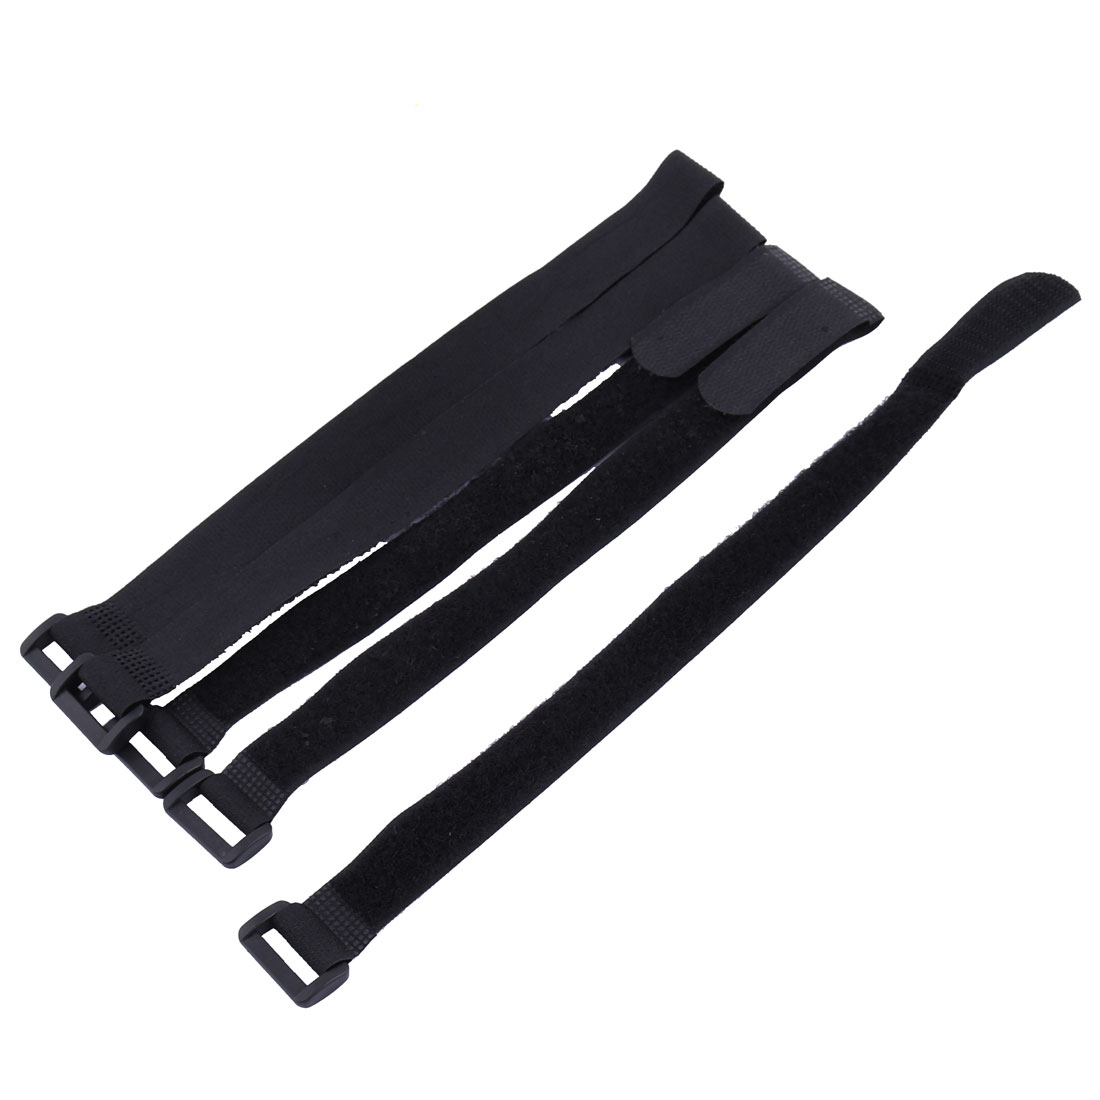 Sticky Hook Loop Adjustable Cable Ties Self Adhesive Fastener Black 5pcs